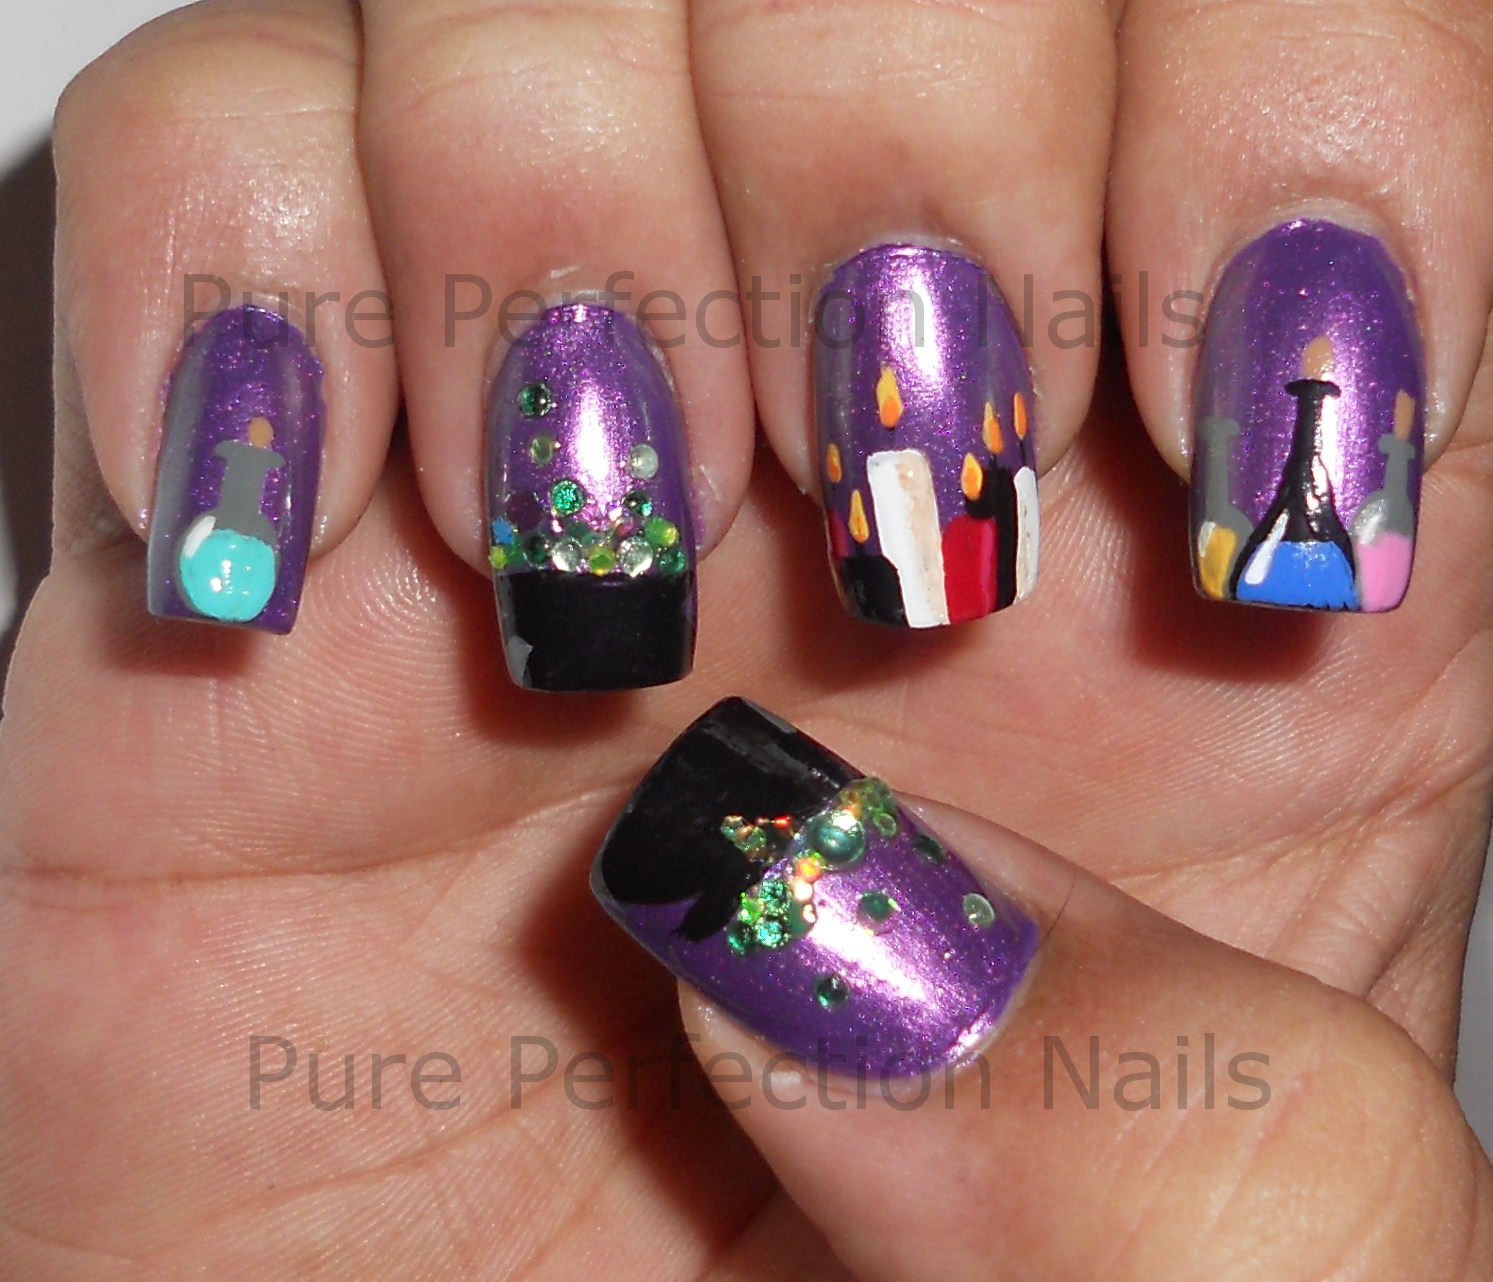 Pure Perfection Nails Double Double Purple Halloween Witch Nail Art